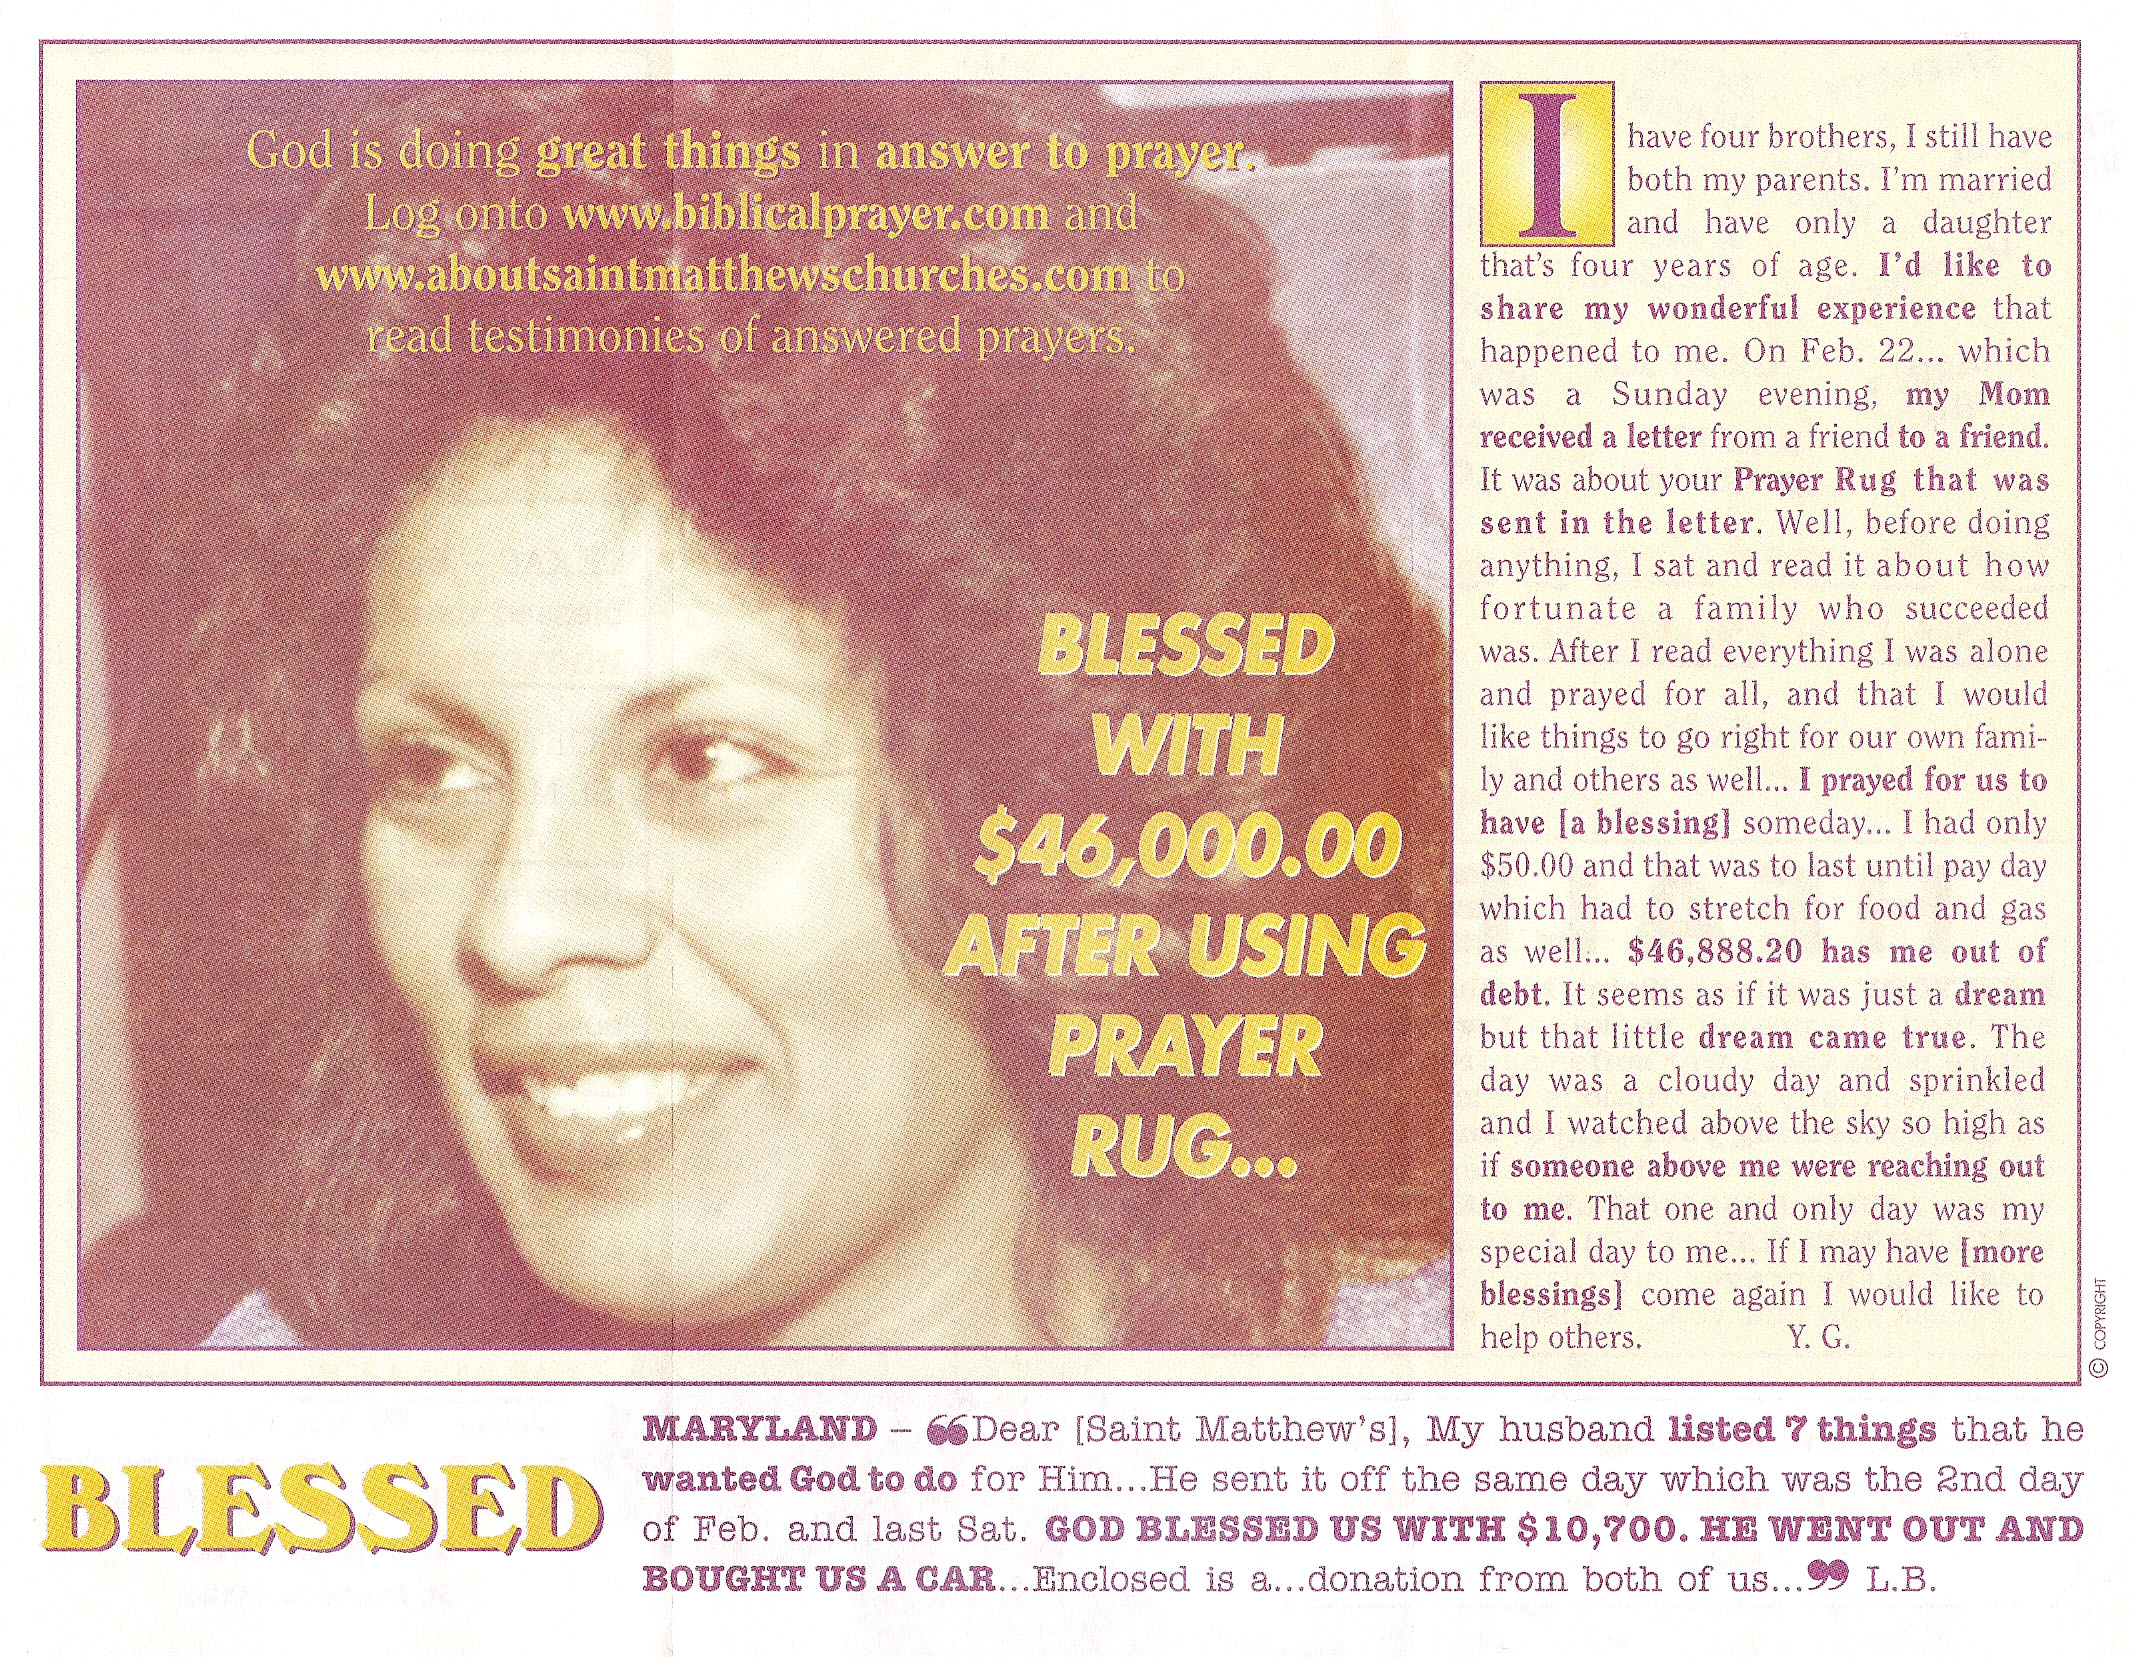 Blessed with $46,000.00 after using prayer rug!